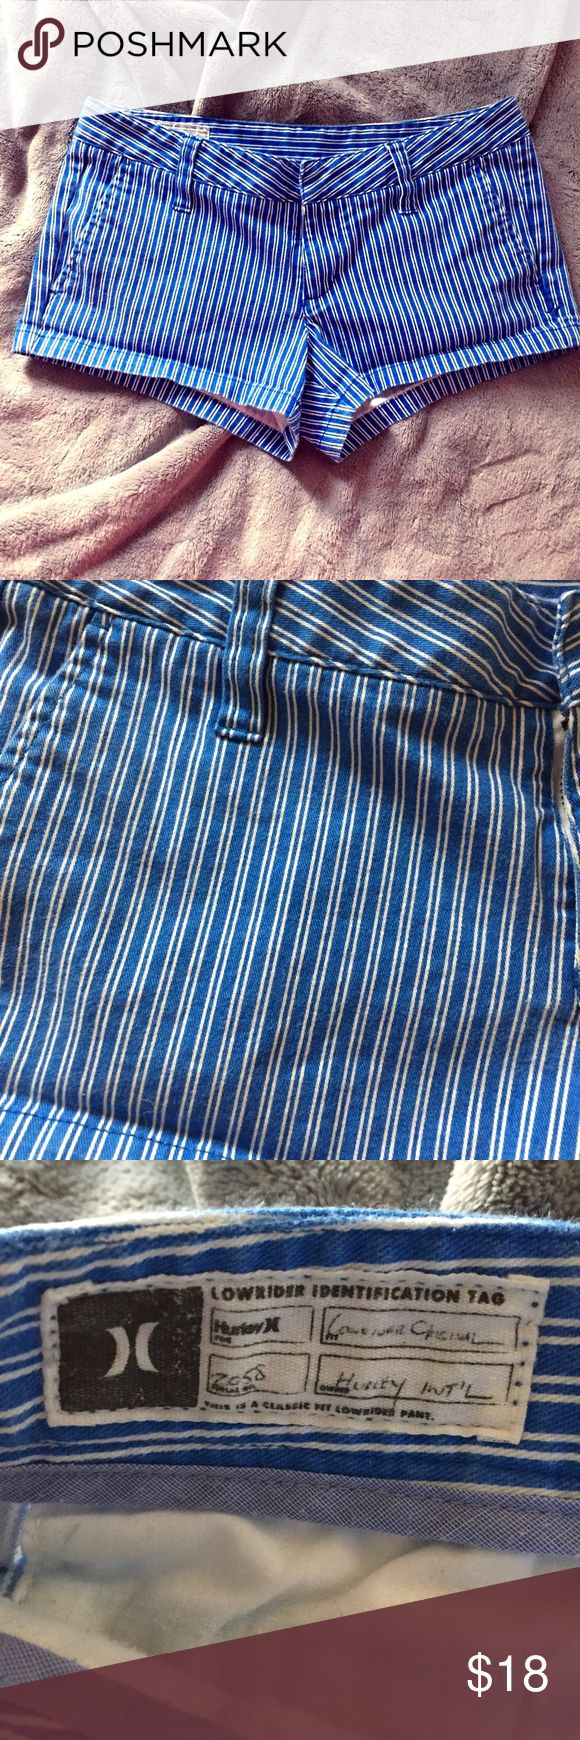 Hurley classic fit lowrider short blue white skate